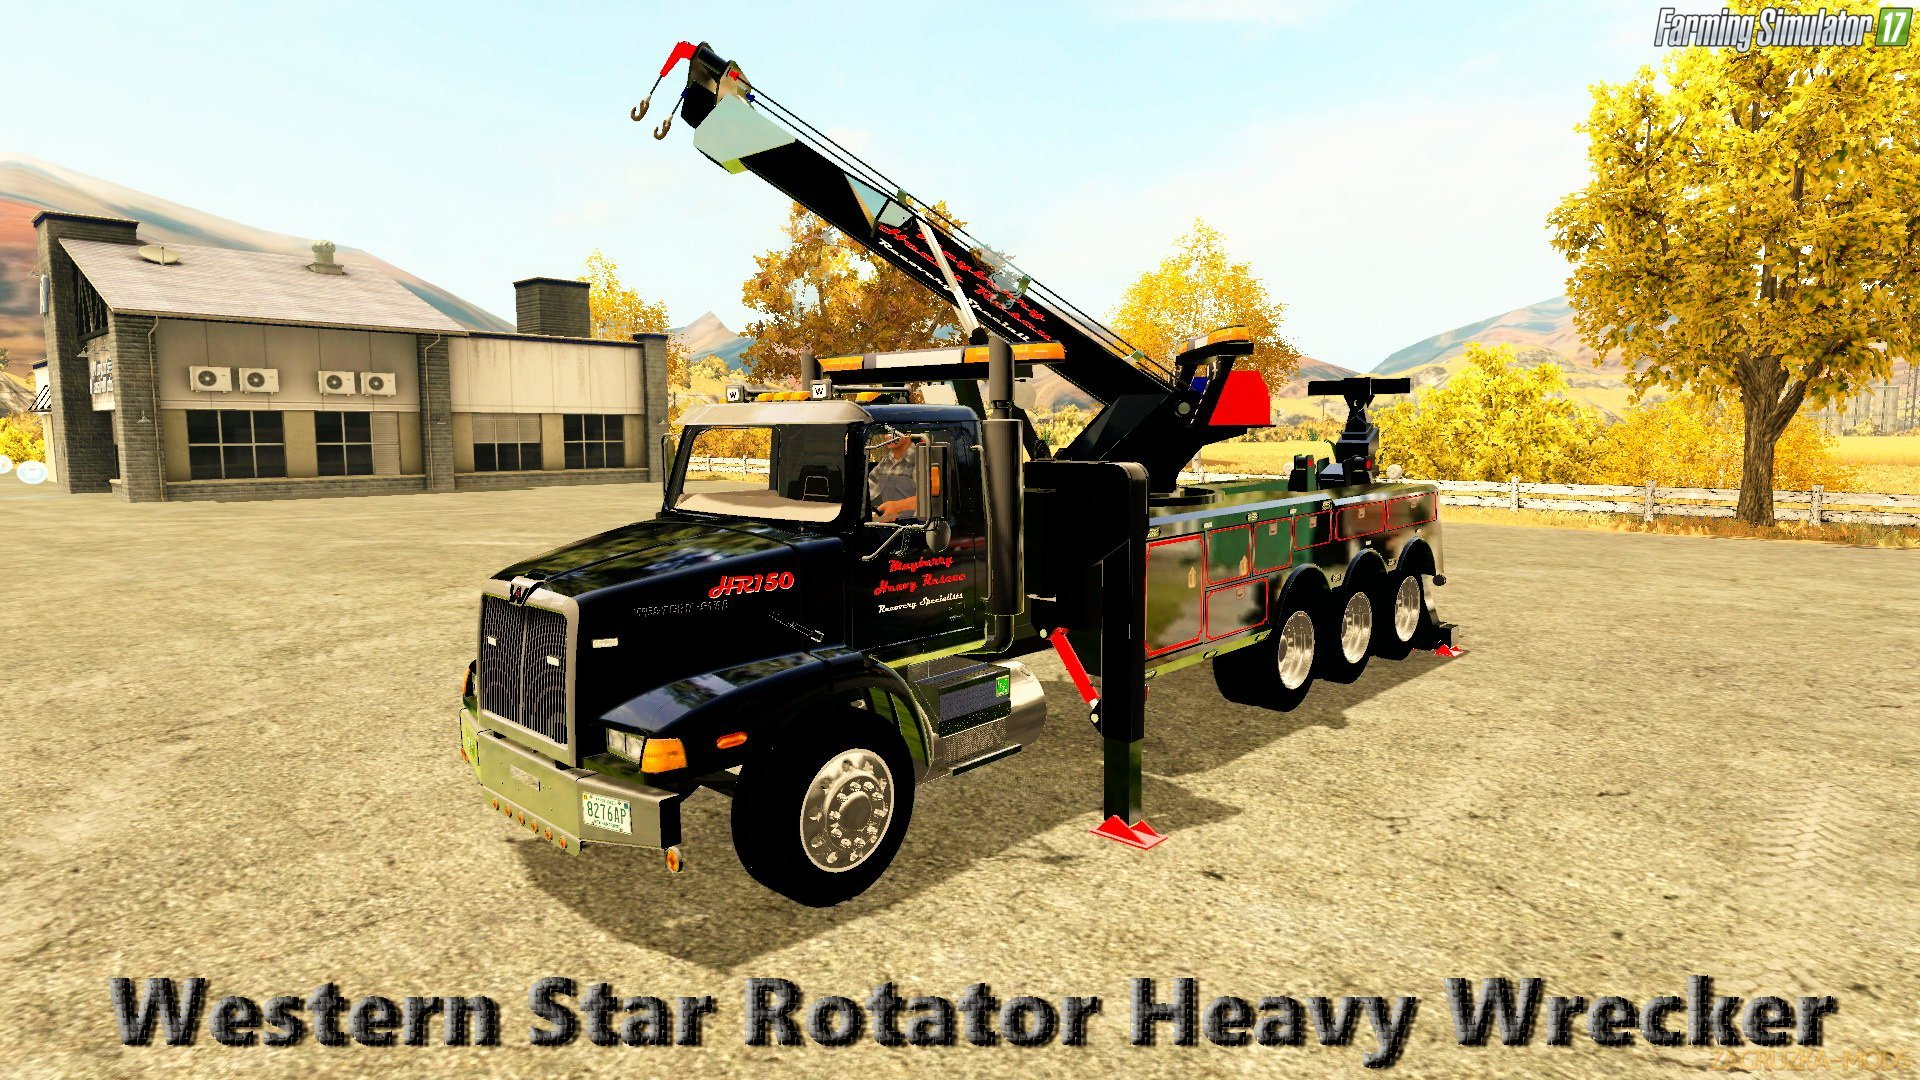 Western Star Rotator Heavy Wrecker V1 0 For Fs 17 Simulator Mods Ets 2 Ats Fs17 Csgo Gta 5 Train